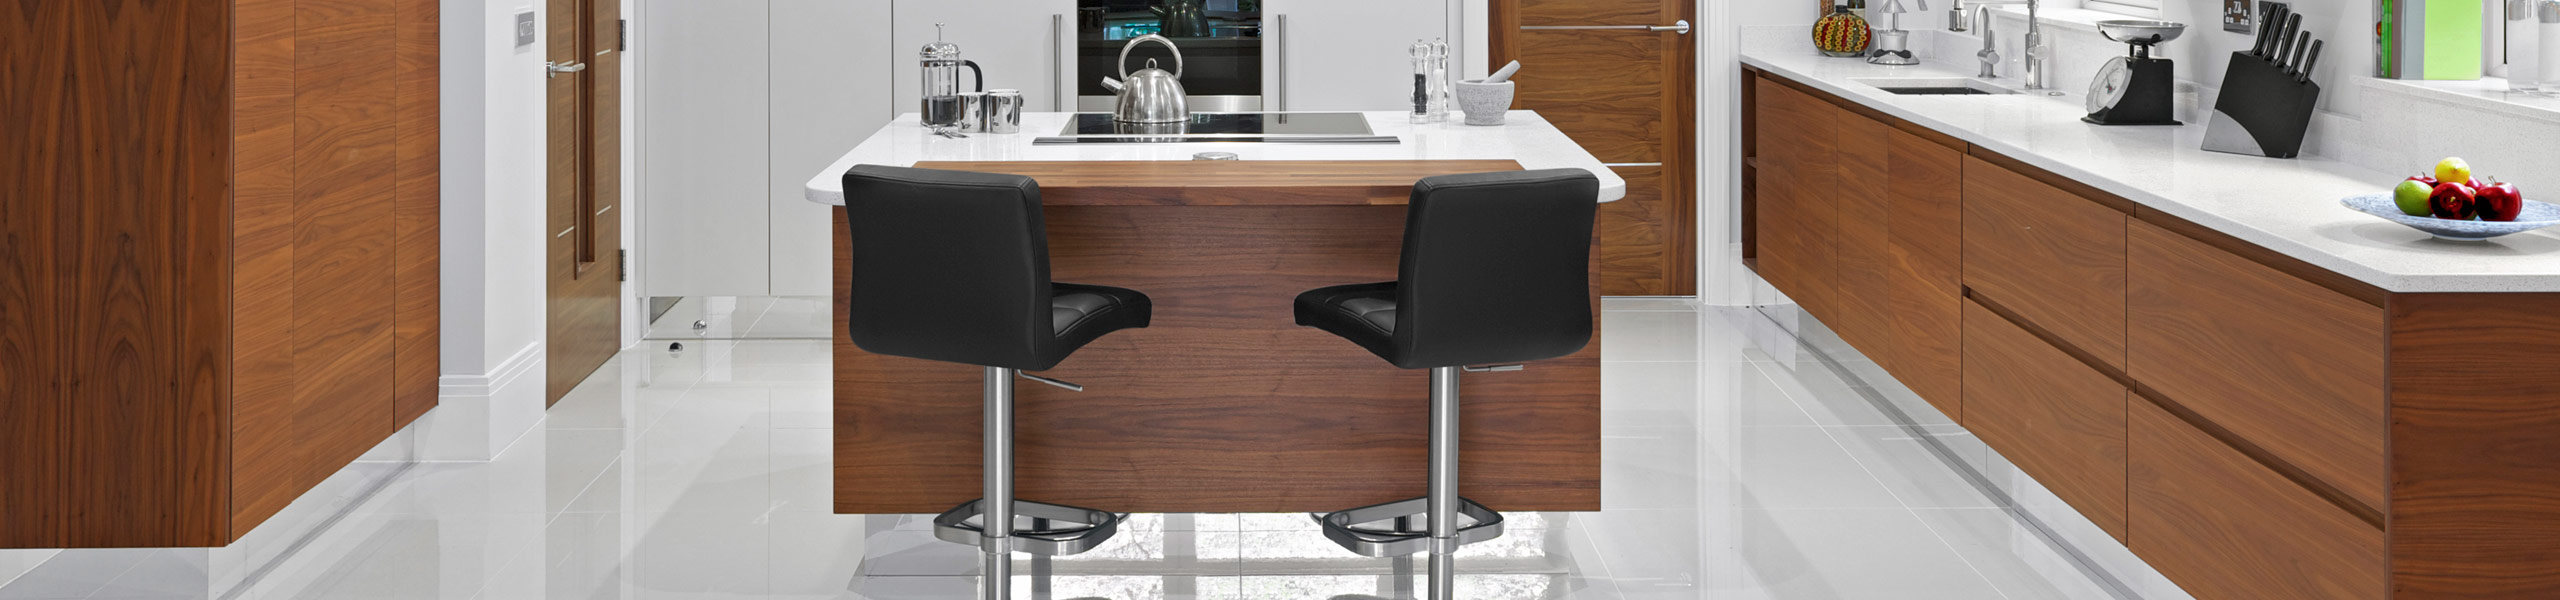 Lush Brushed Steel Bar Stool Black Video Banner